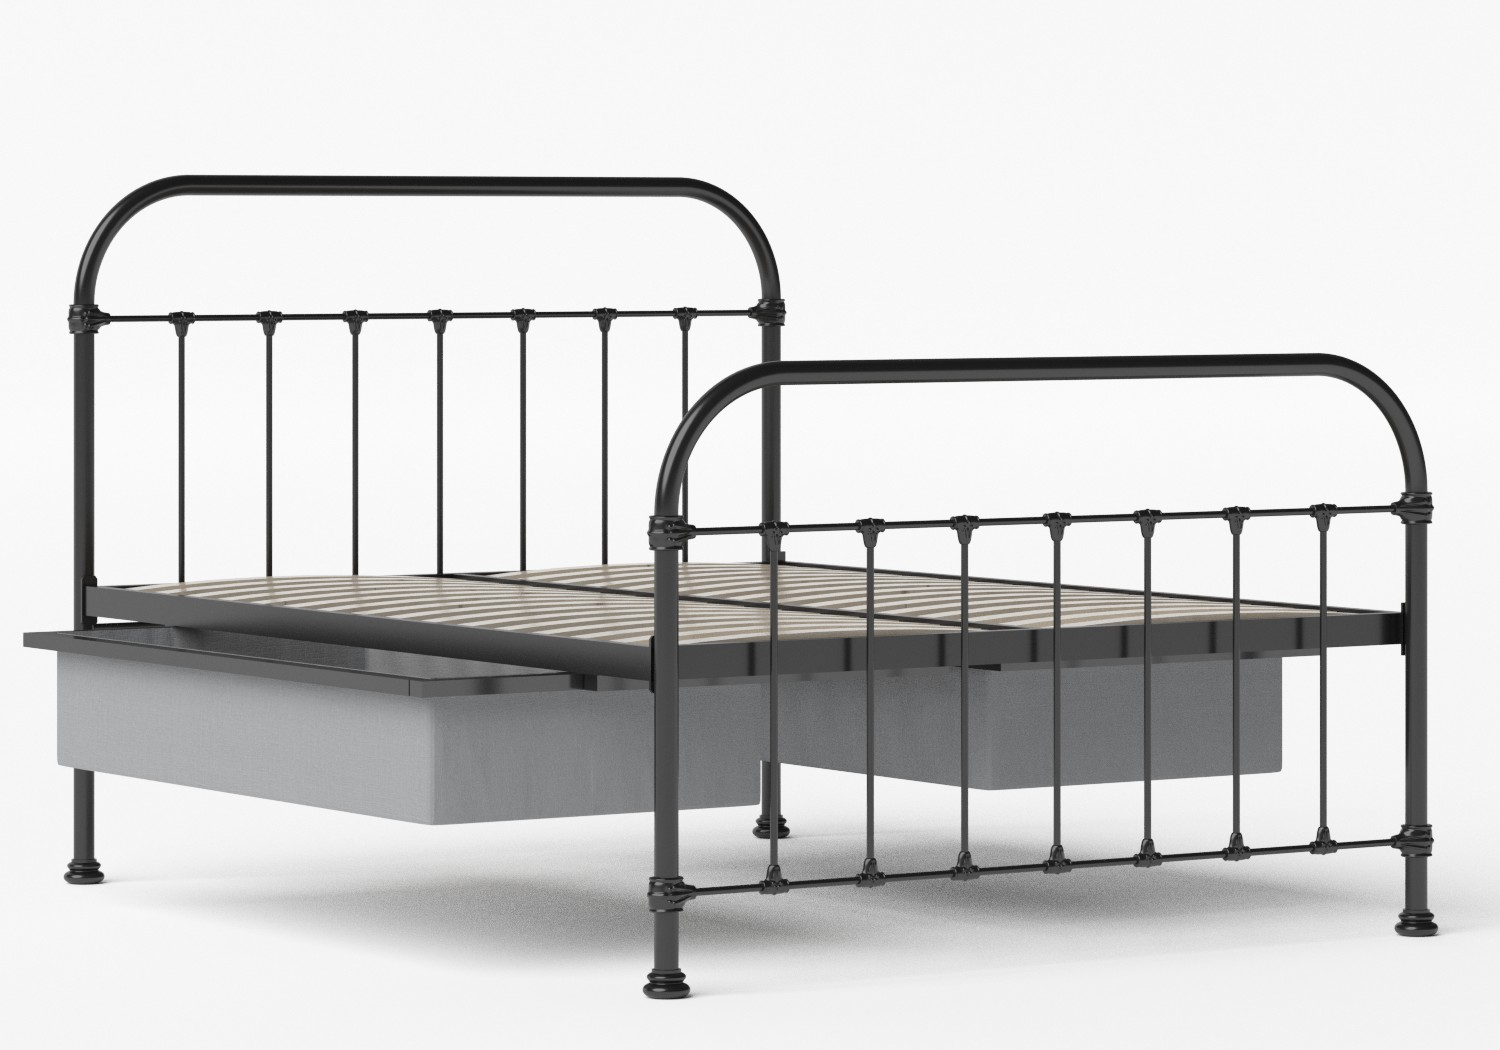 Timolin Iron/Metal Bed in Satin Black shown with underbed storage